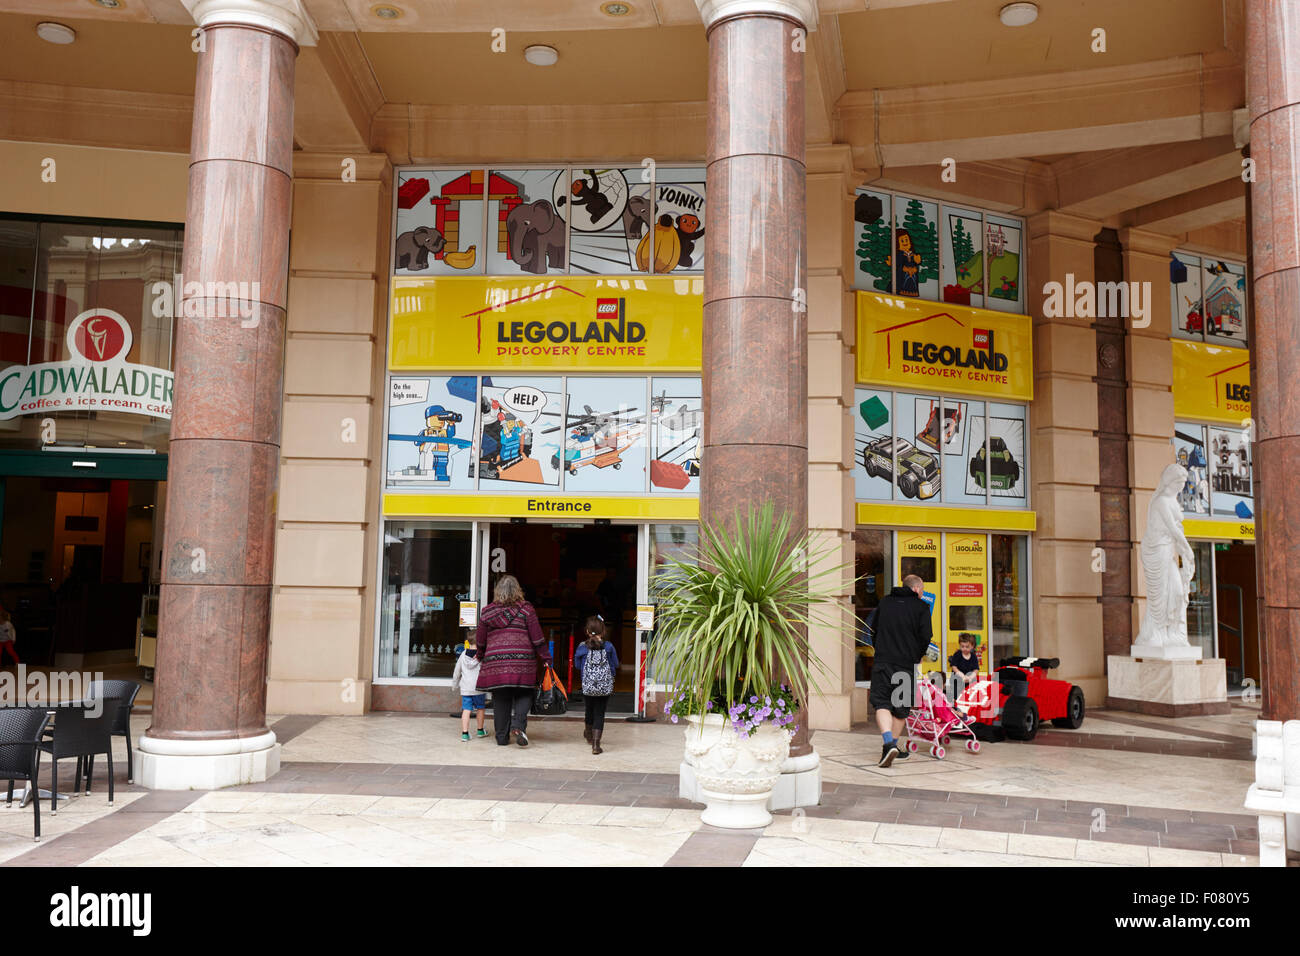 legoland discovery centre at barton square section of the trafford centre Manchester uk Stock Photo